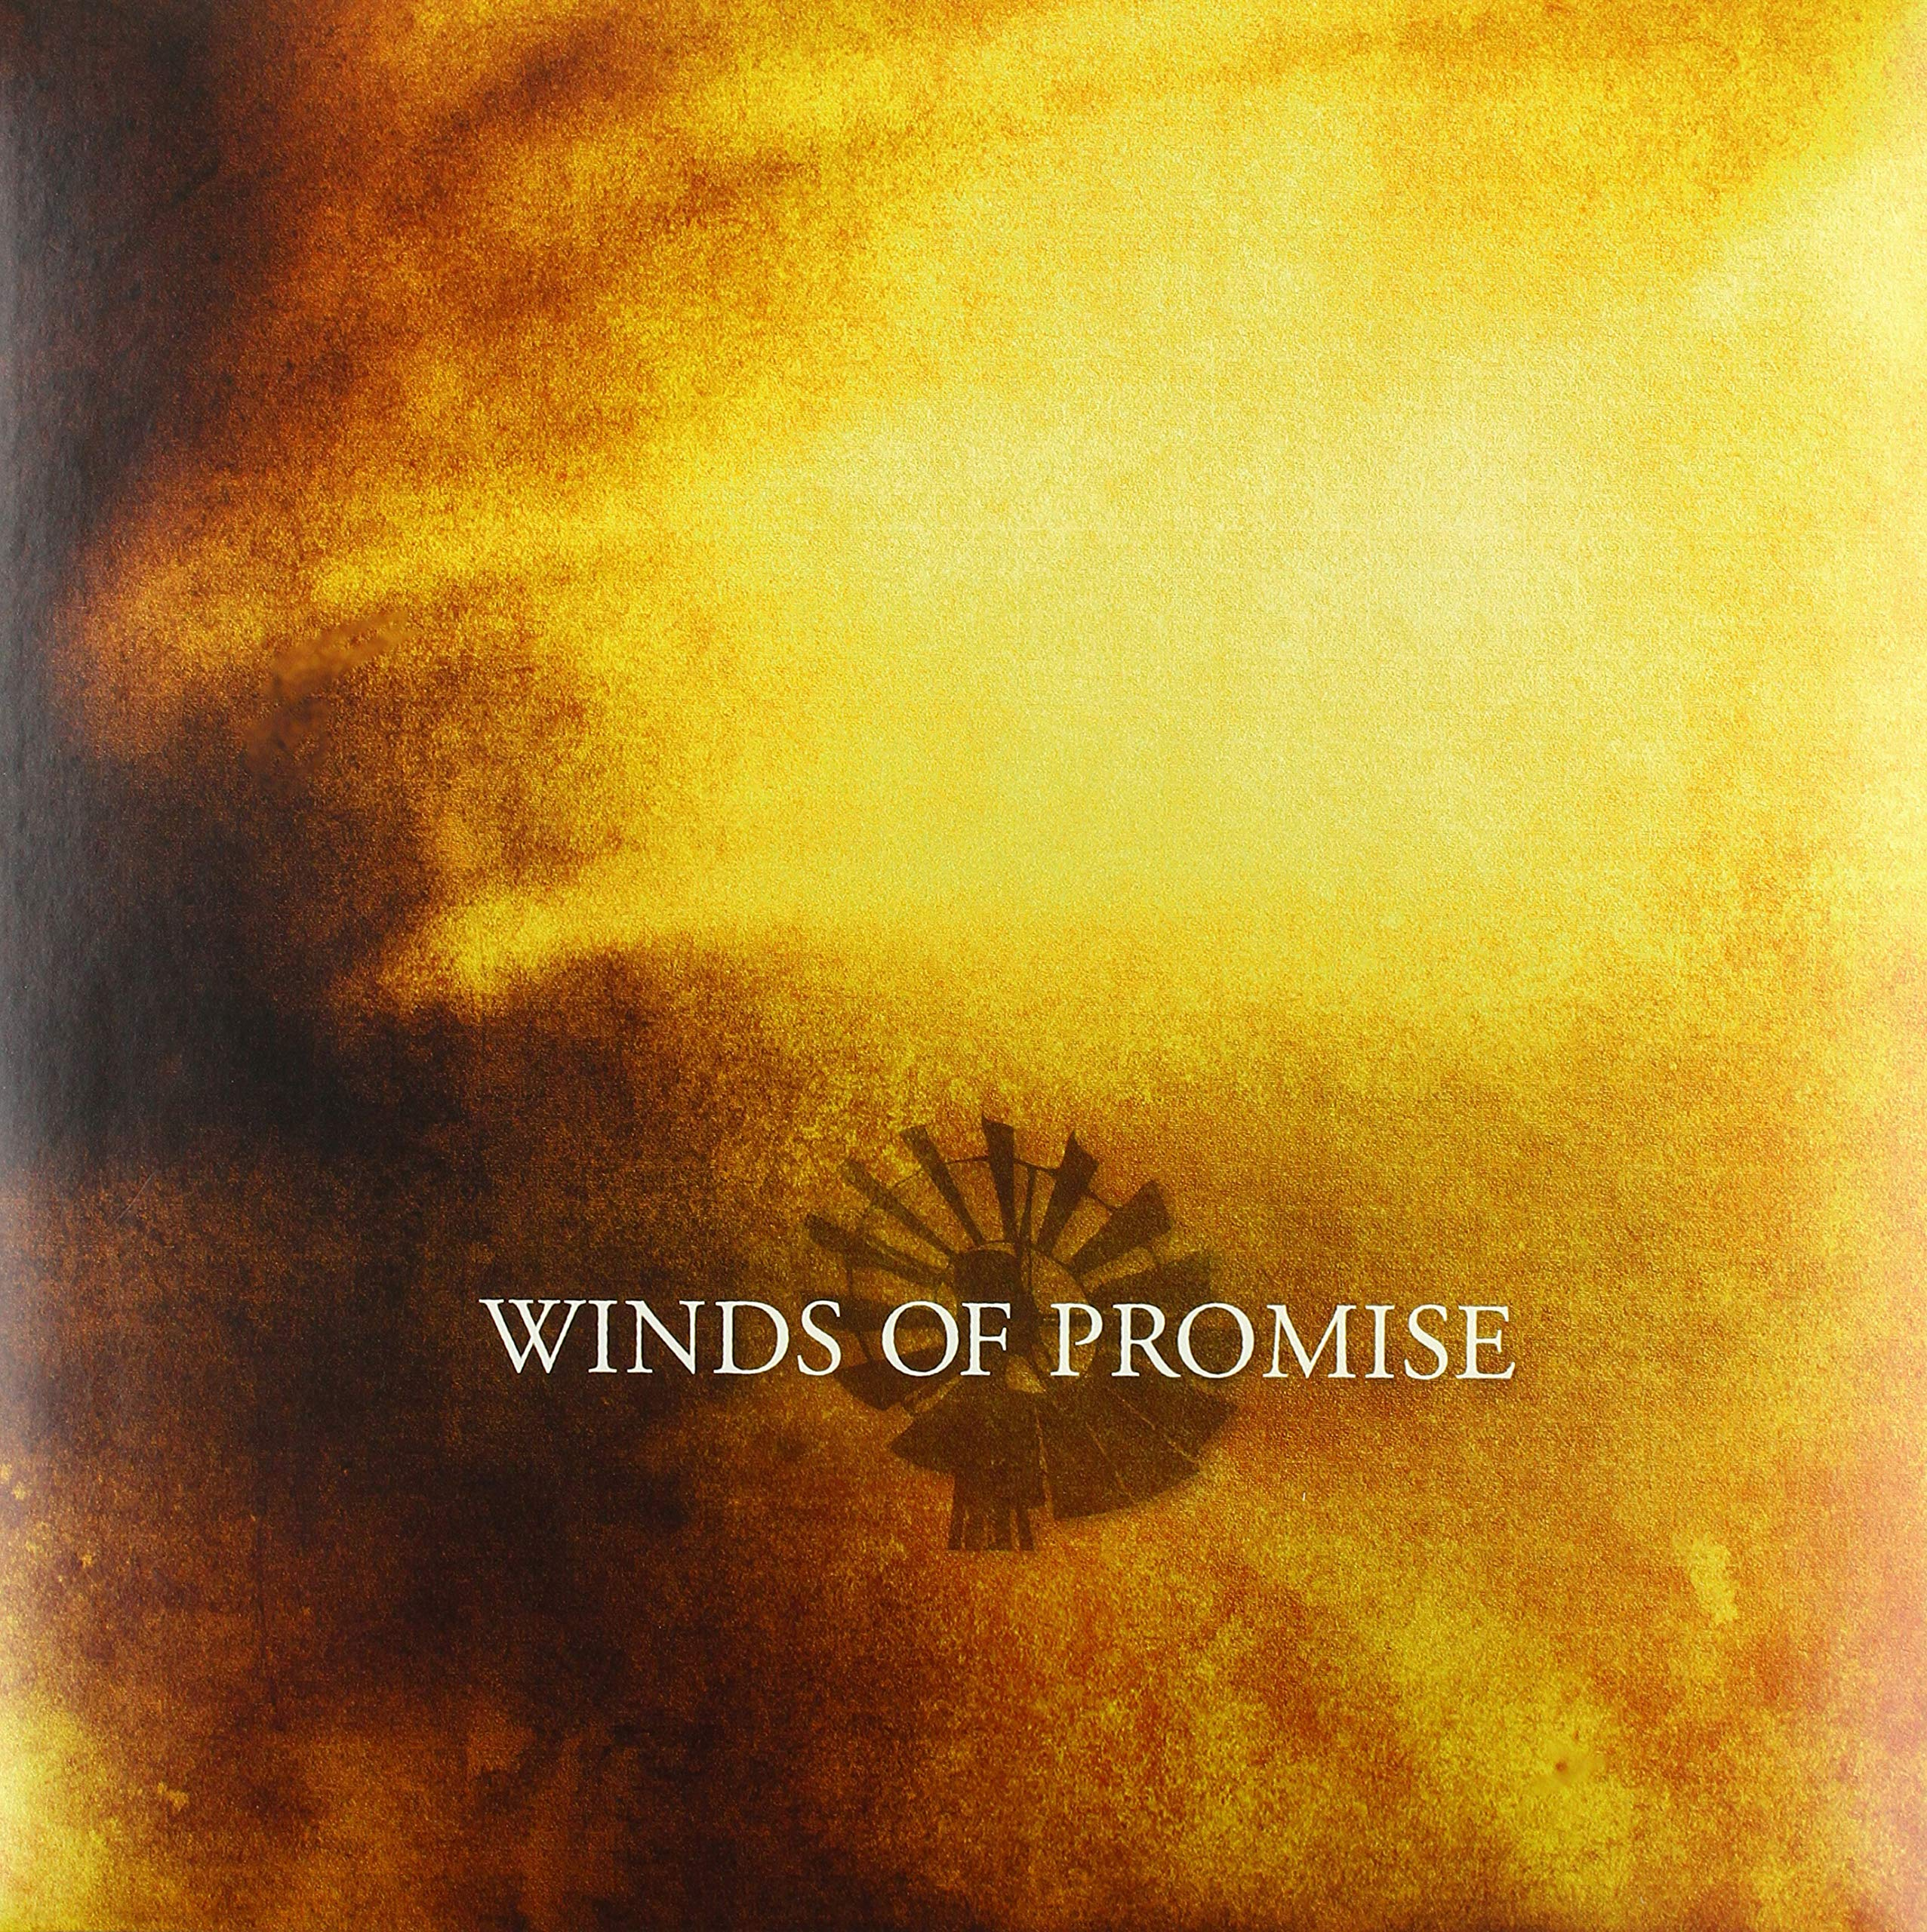 Vinilo : Winds of Promise - Winds Of Promise (Yellow, Gatefold LP Jacket, Poster)